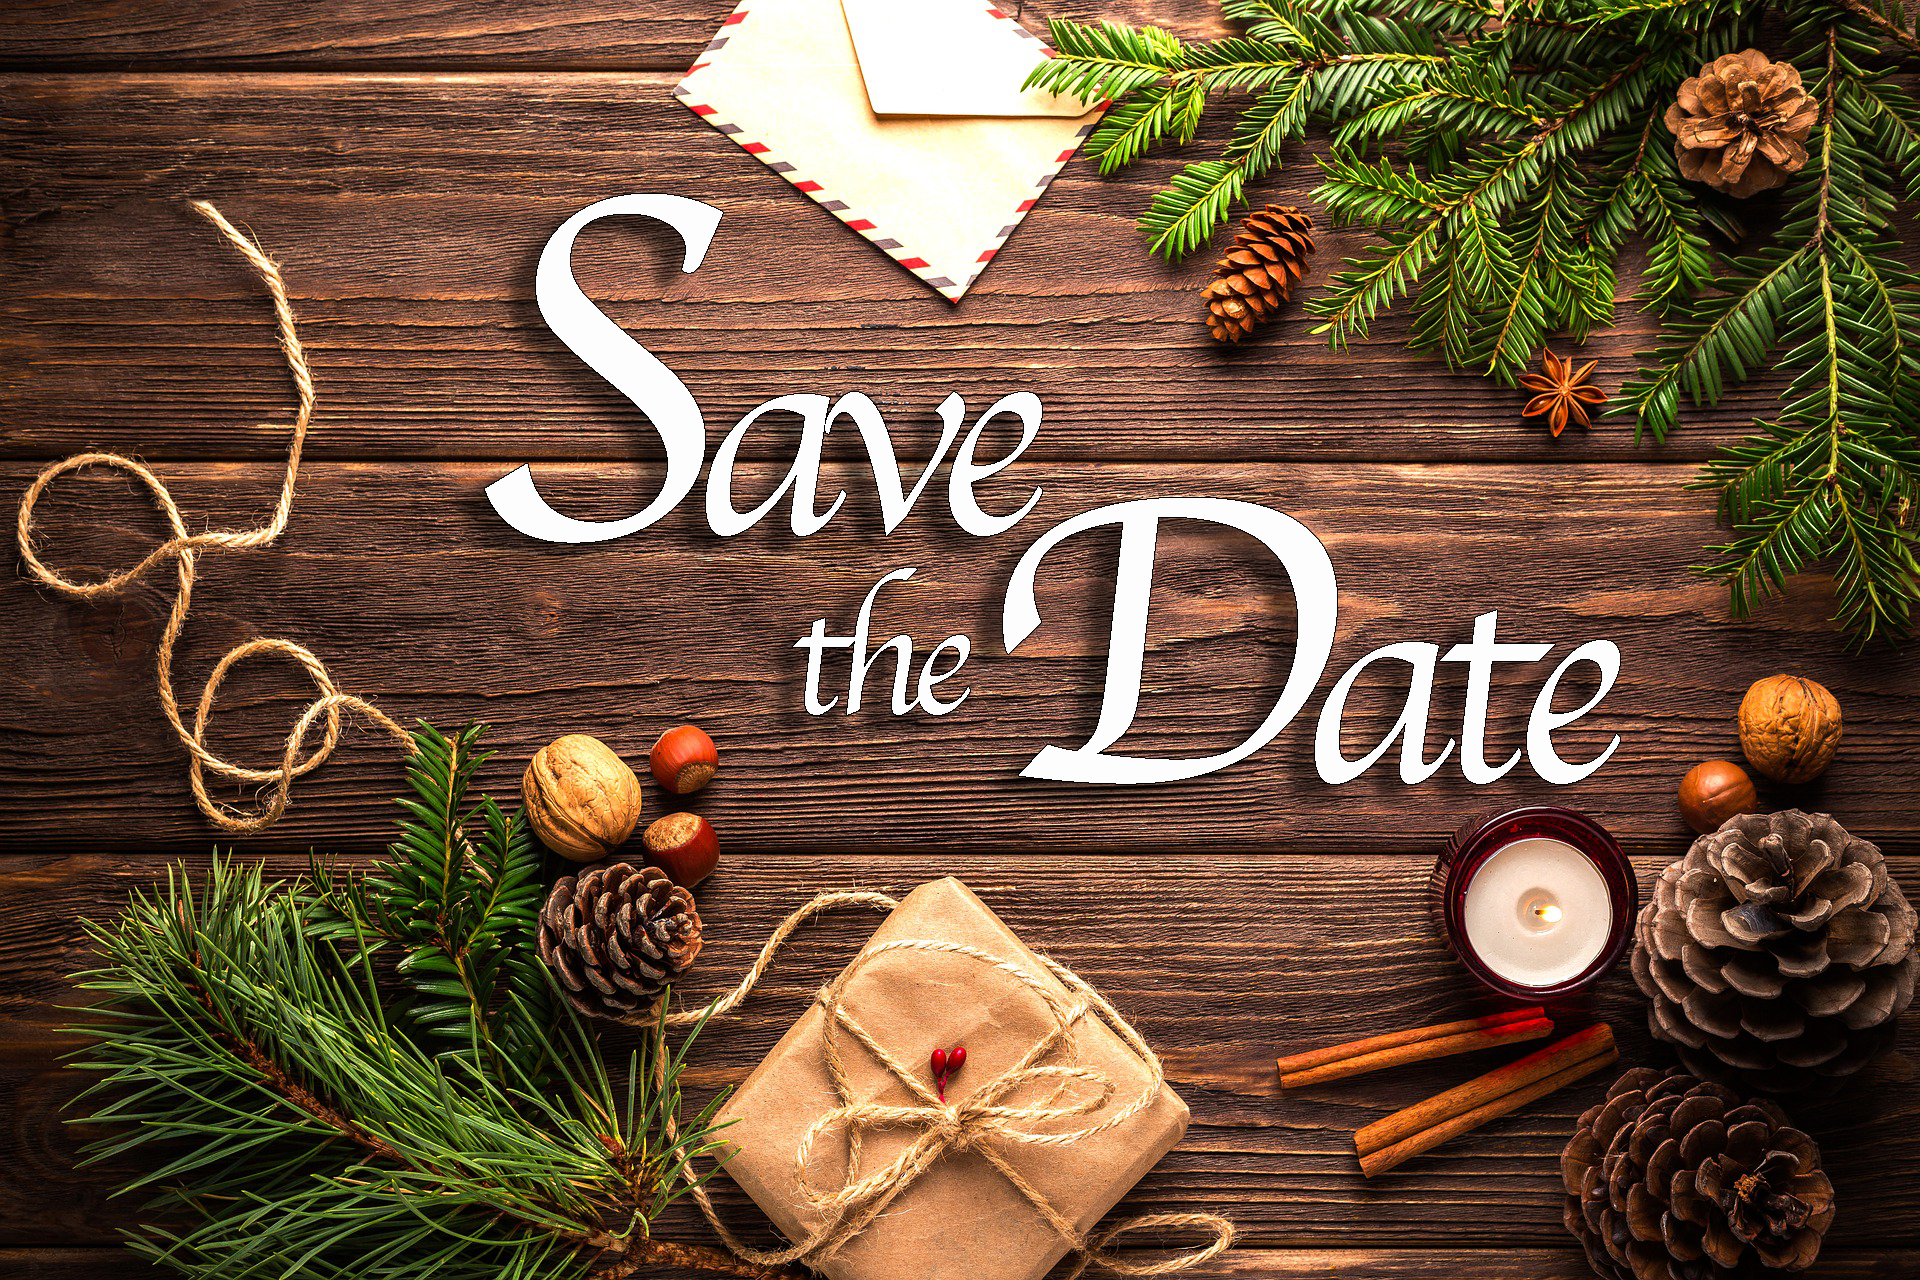 Christmas Save The Date.Save The Date 2019 Union Christmas Party Date Location